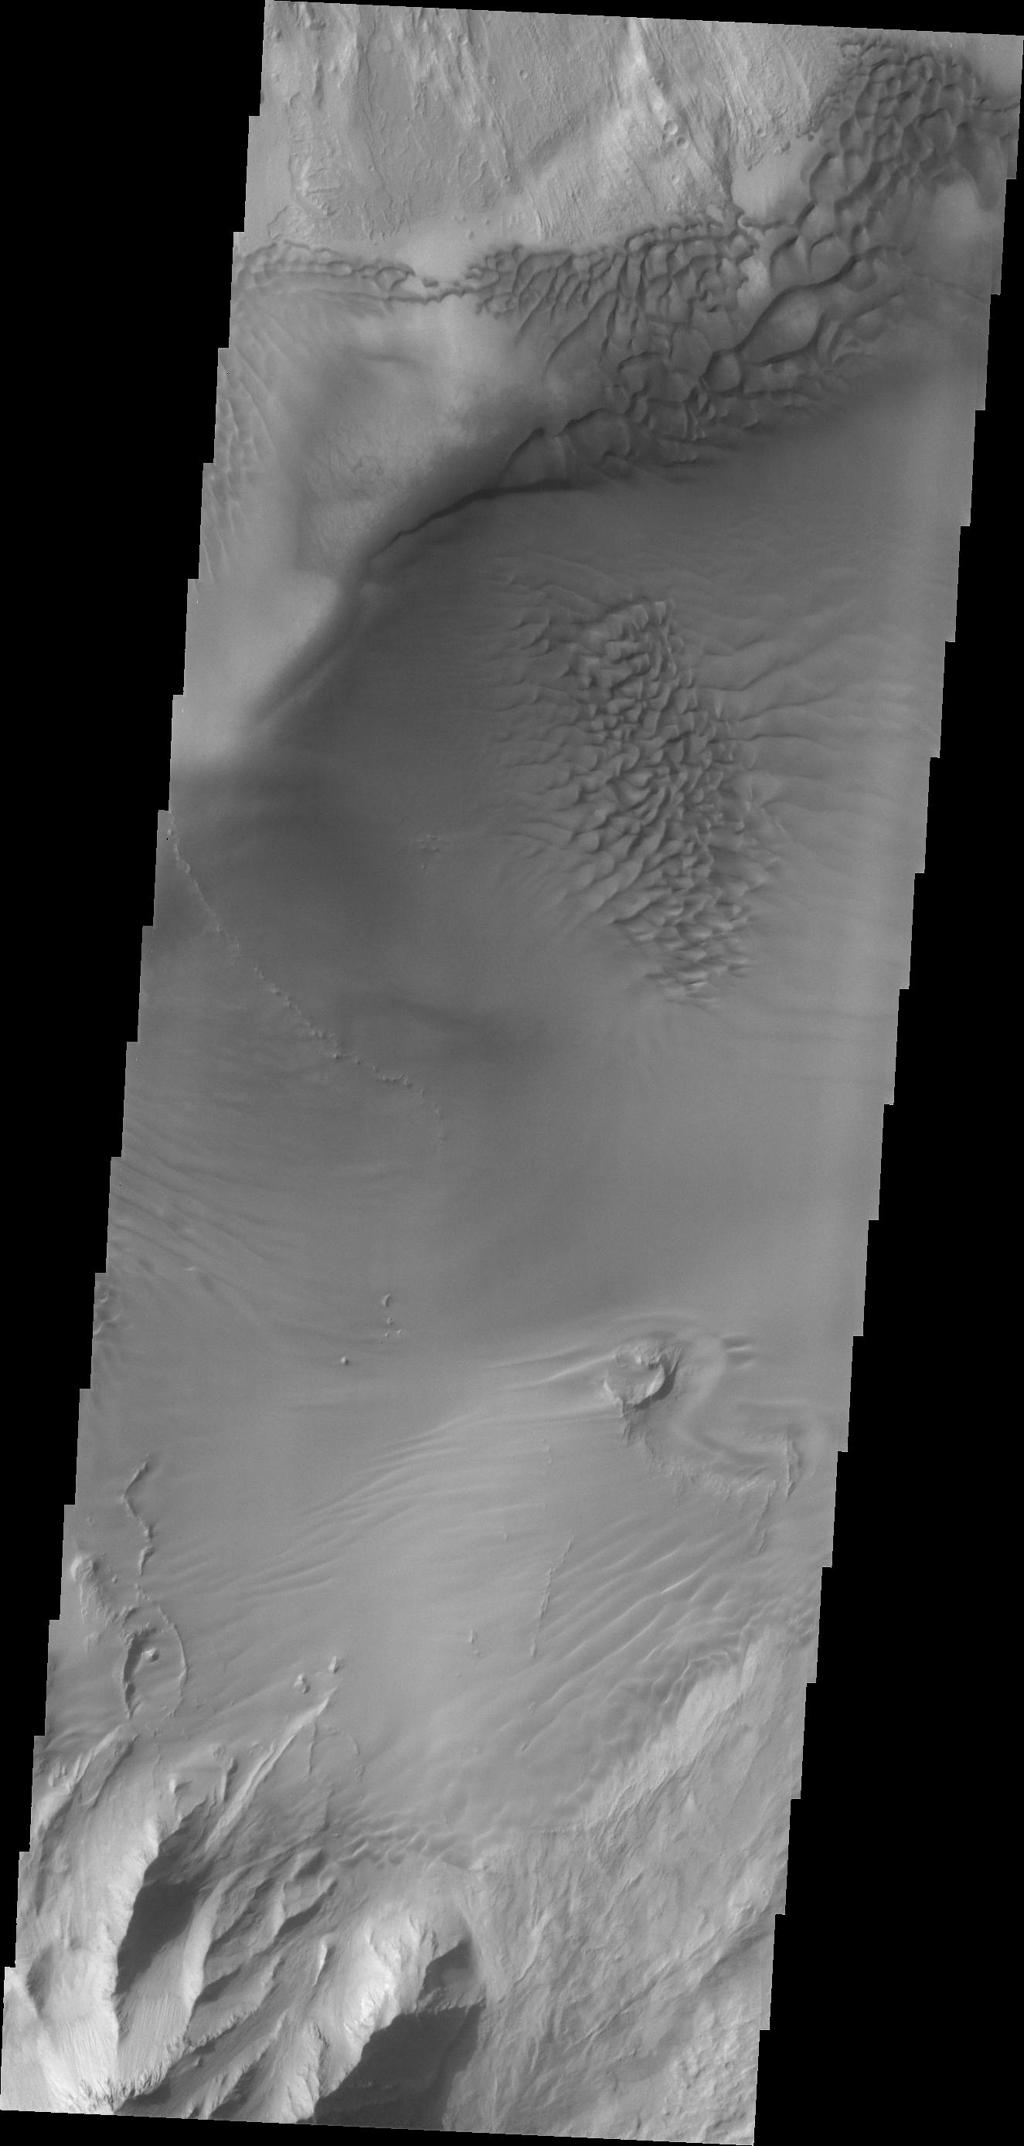 This image captured by NASA's 2001 Mars Odyssey shows dunes on the floor of Juventae Chasma.